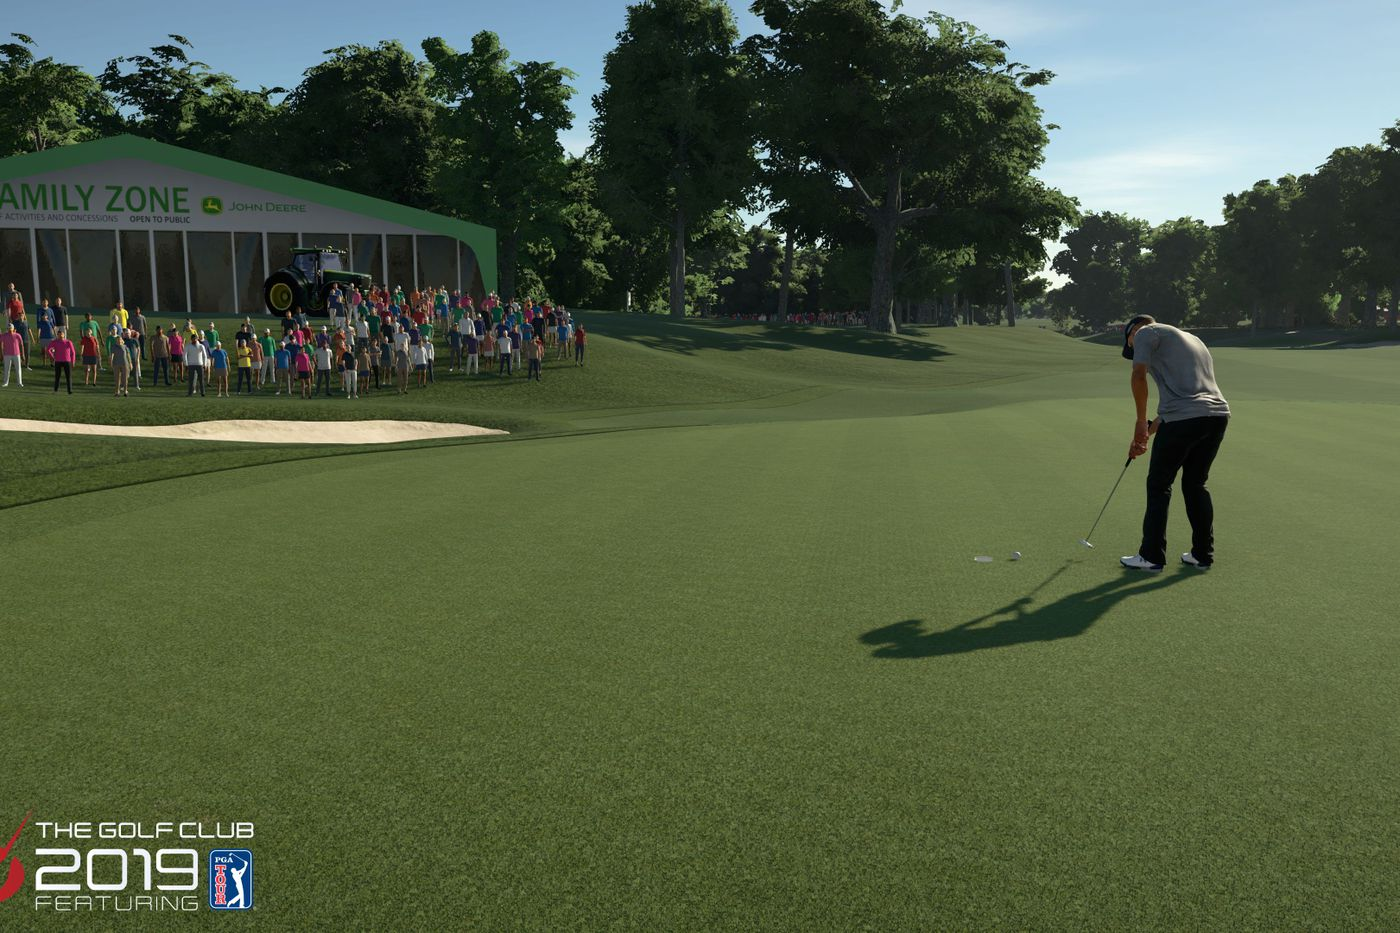 The Golf Club 2019 impressions: A game that needs a lot of